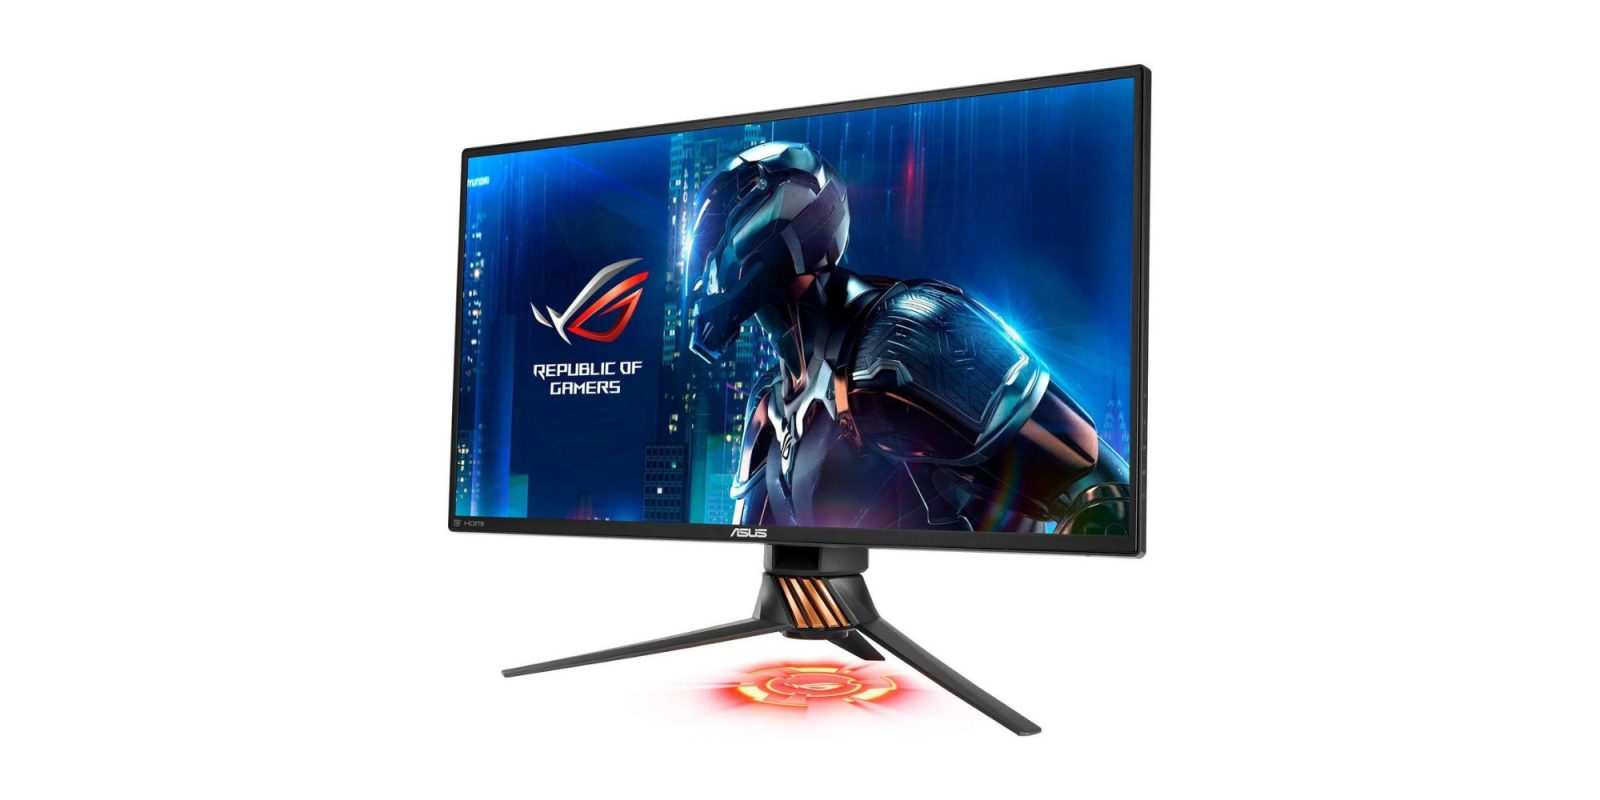 ASUS offers 240Hz refresh rates in its 24.5-inch 1080p monitor: $384 (Amazon low)